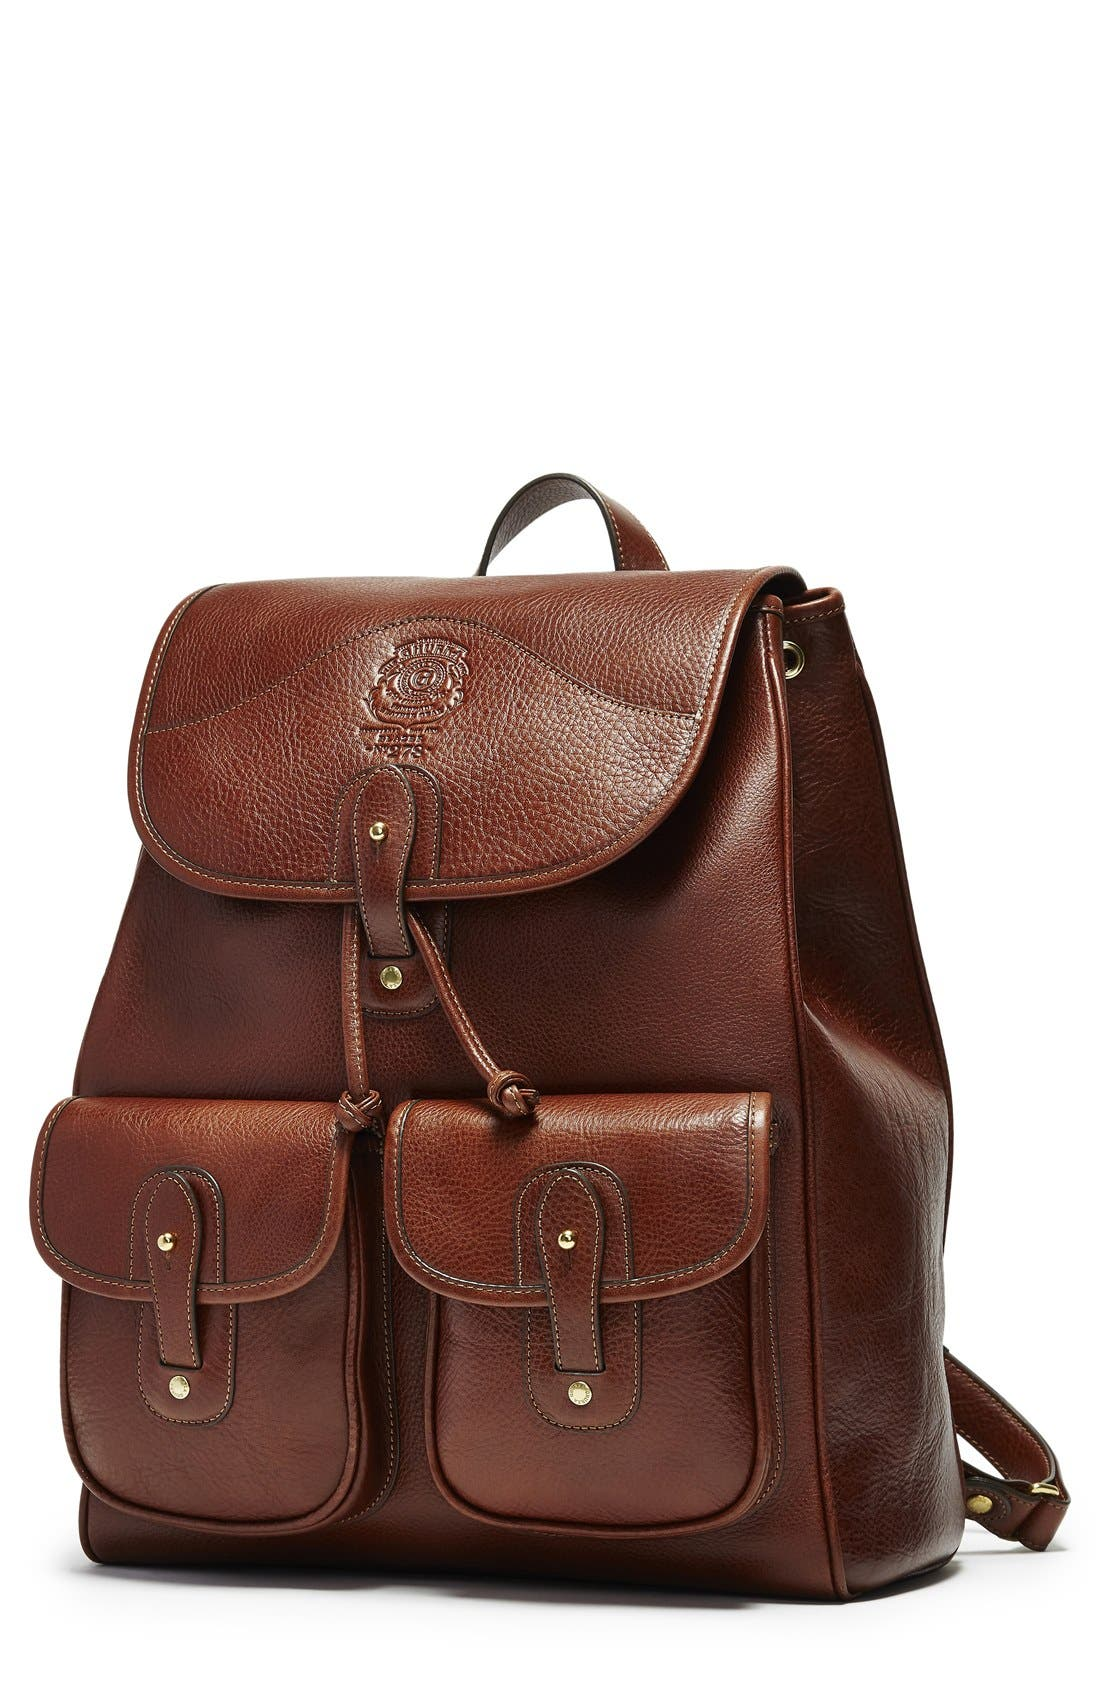 Ghurka 'Blazer' Leather Backpack